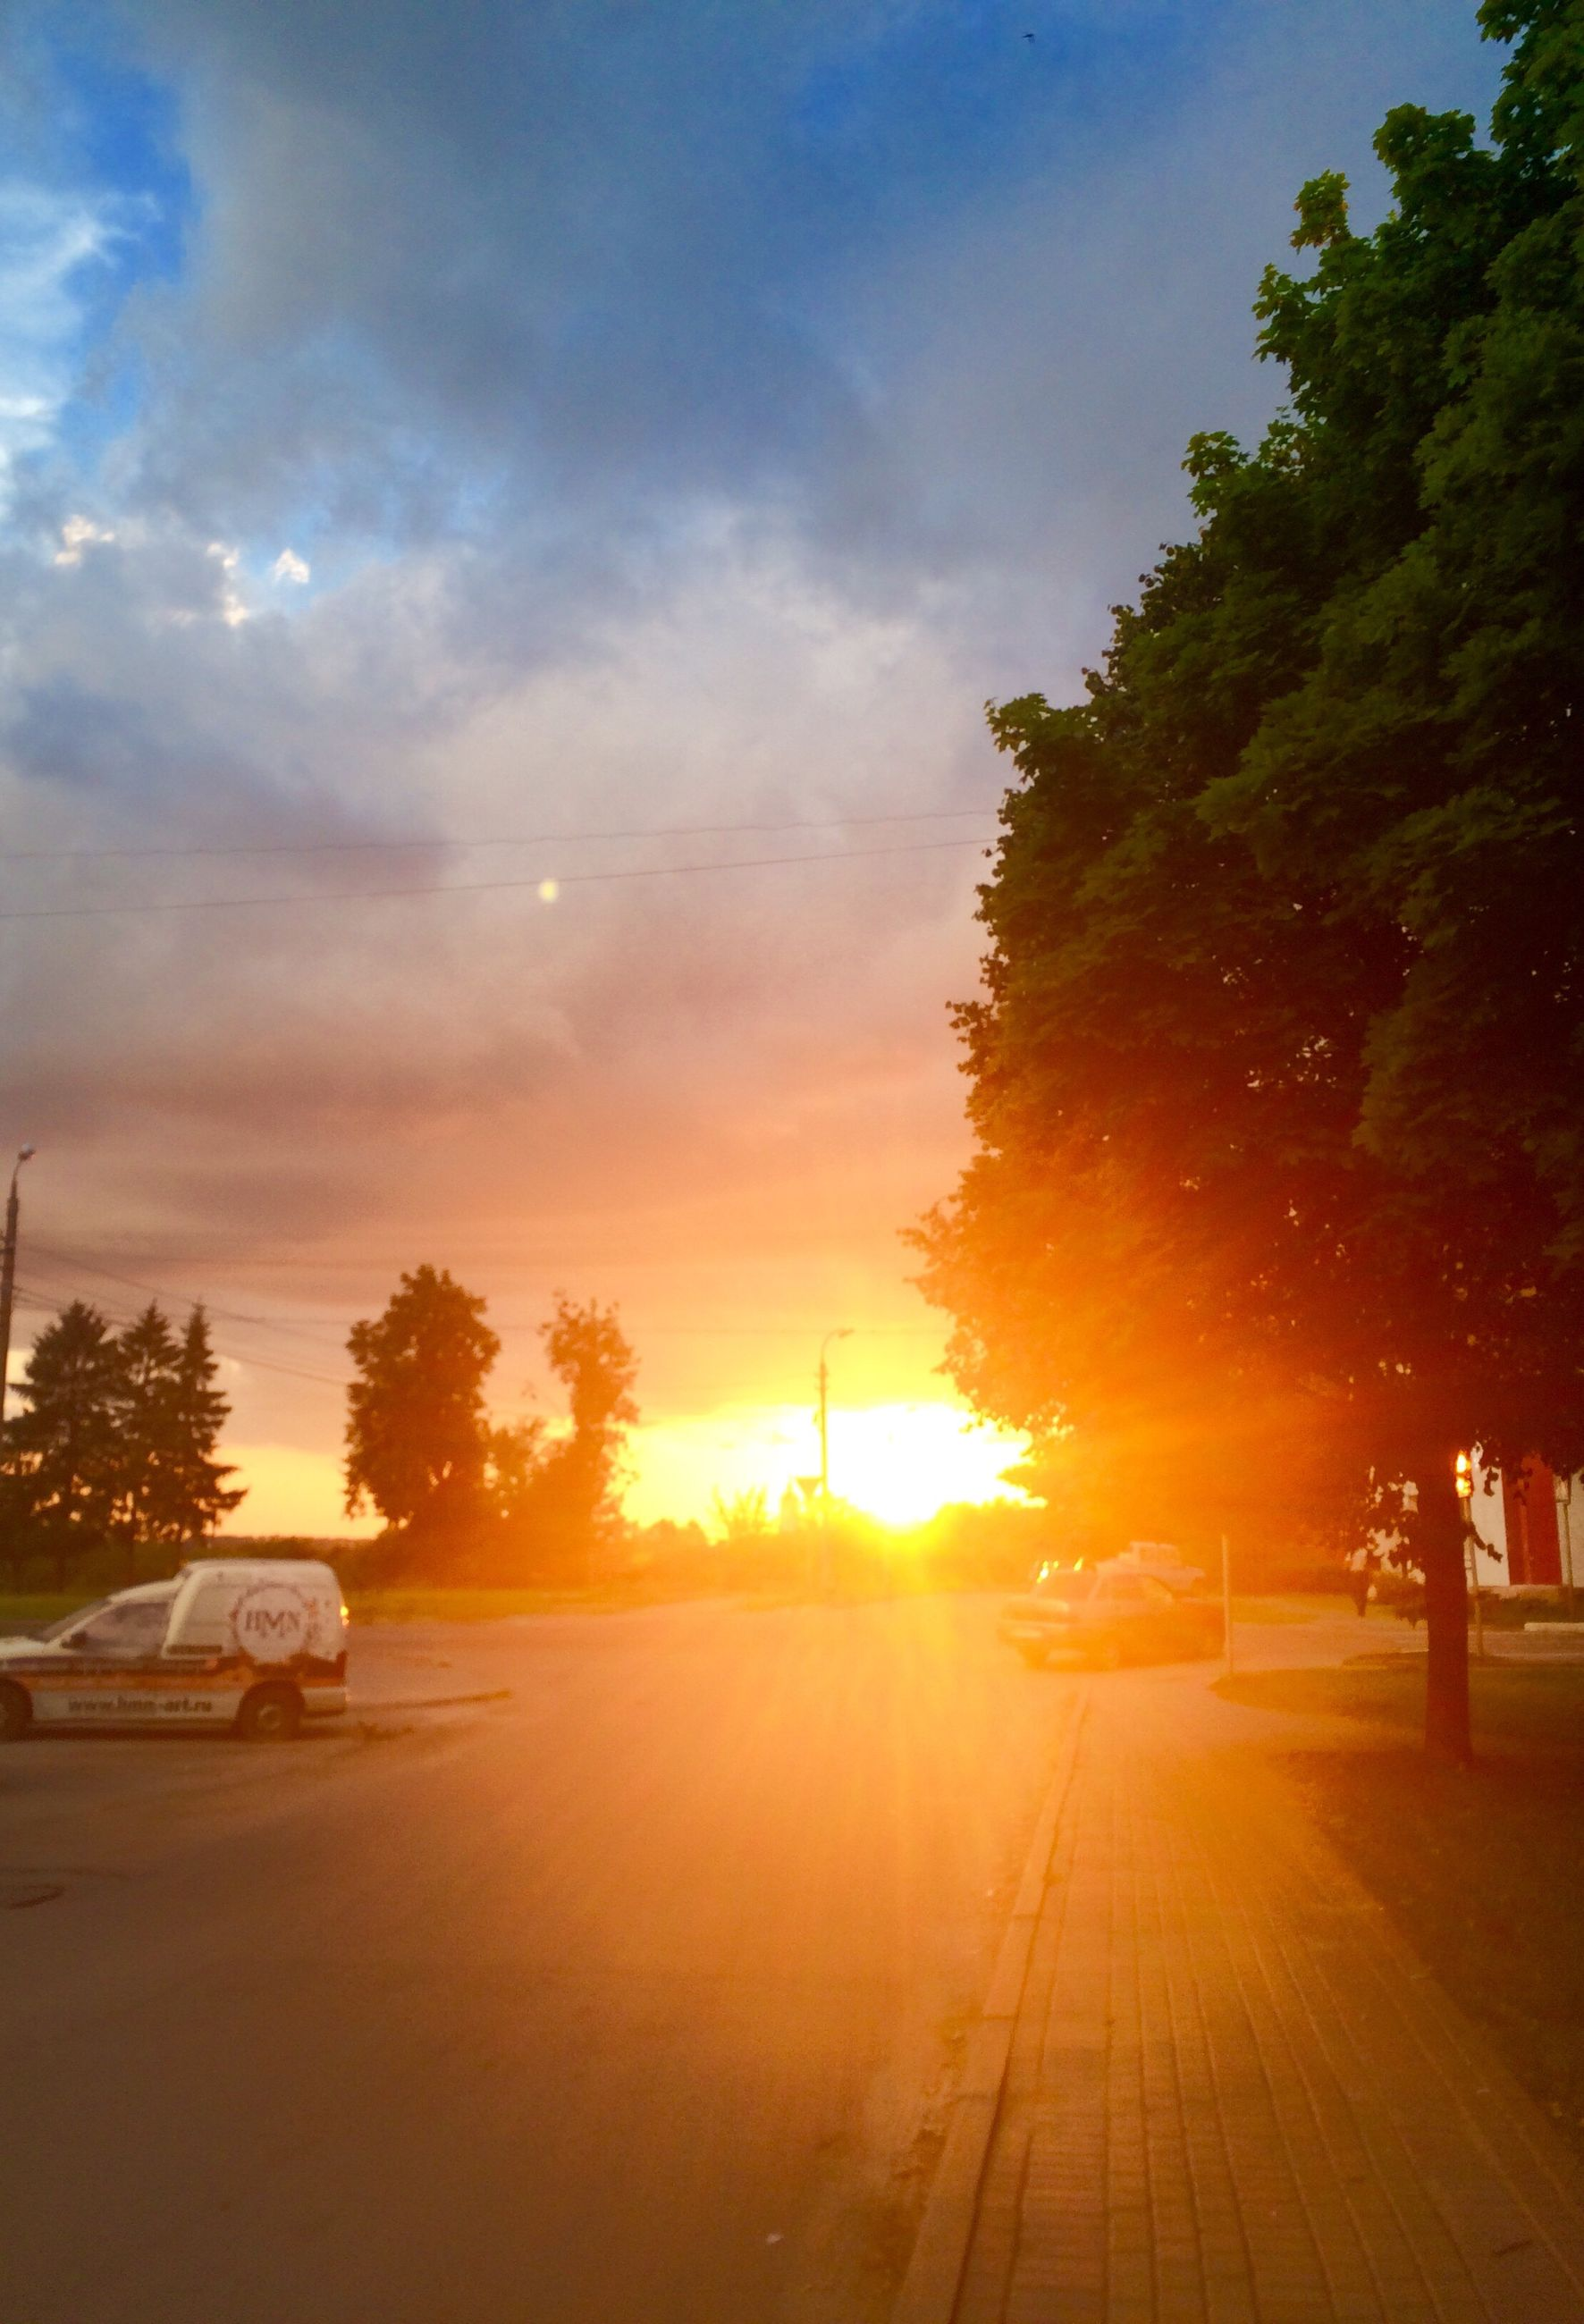 transportation, tree, car, land vehicle, sunset, mode of transport, road, sun, street, lens flare, sunbeam, sunlight, orange color, sky, tranquil scene, outdoors, vehicle, scenics, tranquility, parked, beauty in nature, cloud - sky, the way forward, dramatic sky